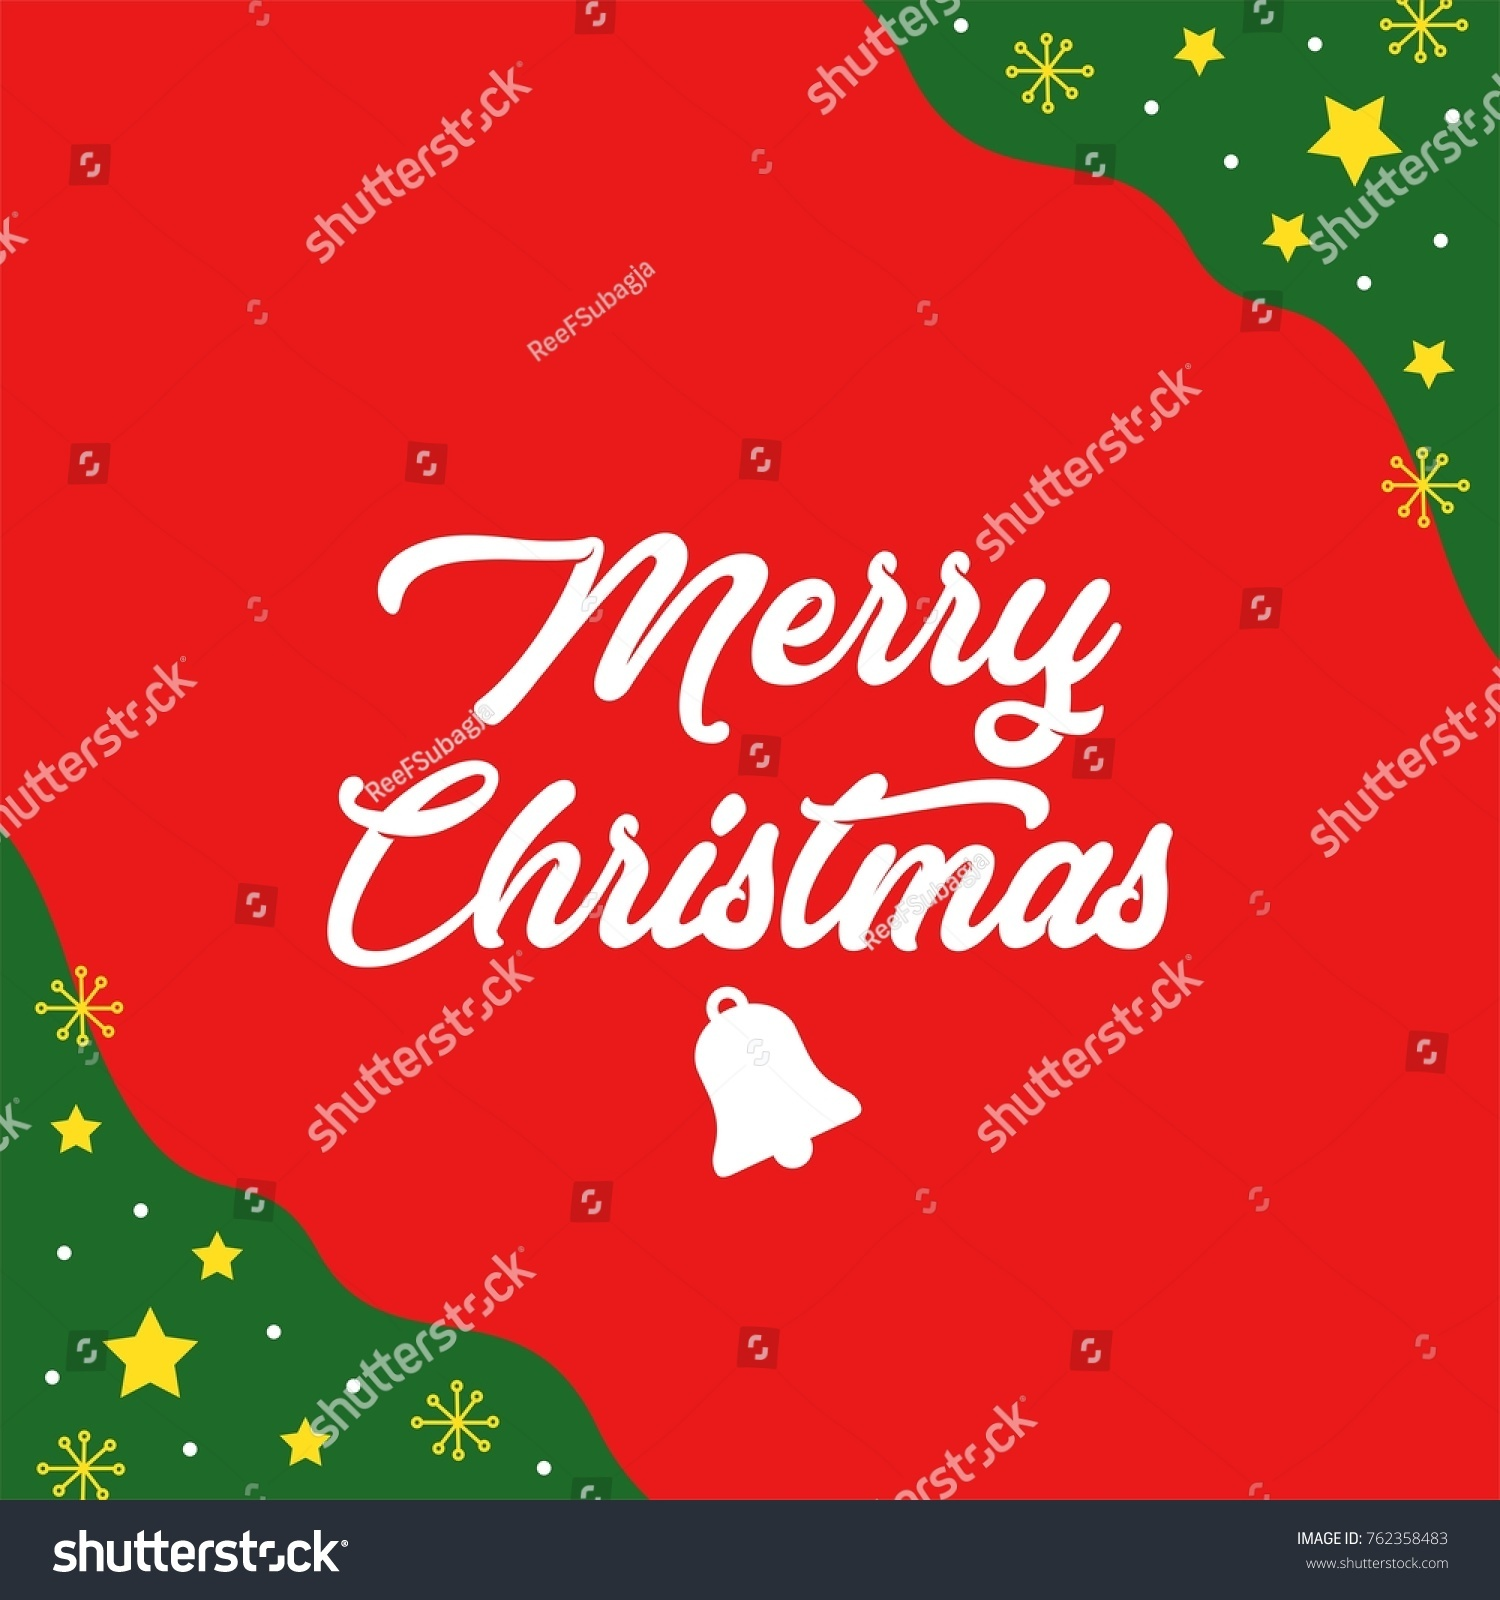 Merry Christmas Gift Card Stock Vector (Royalty Free) 762358483 ...